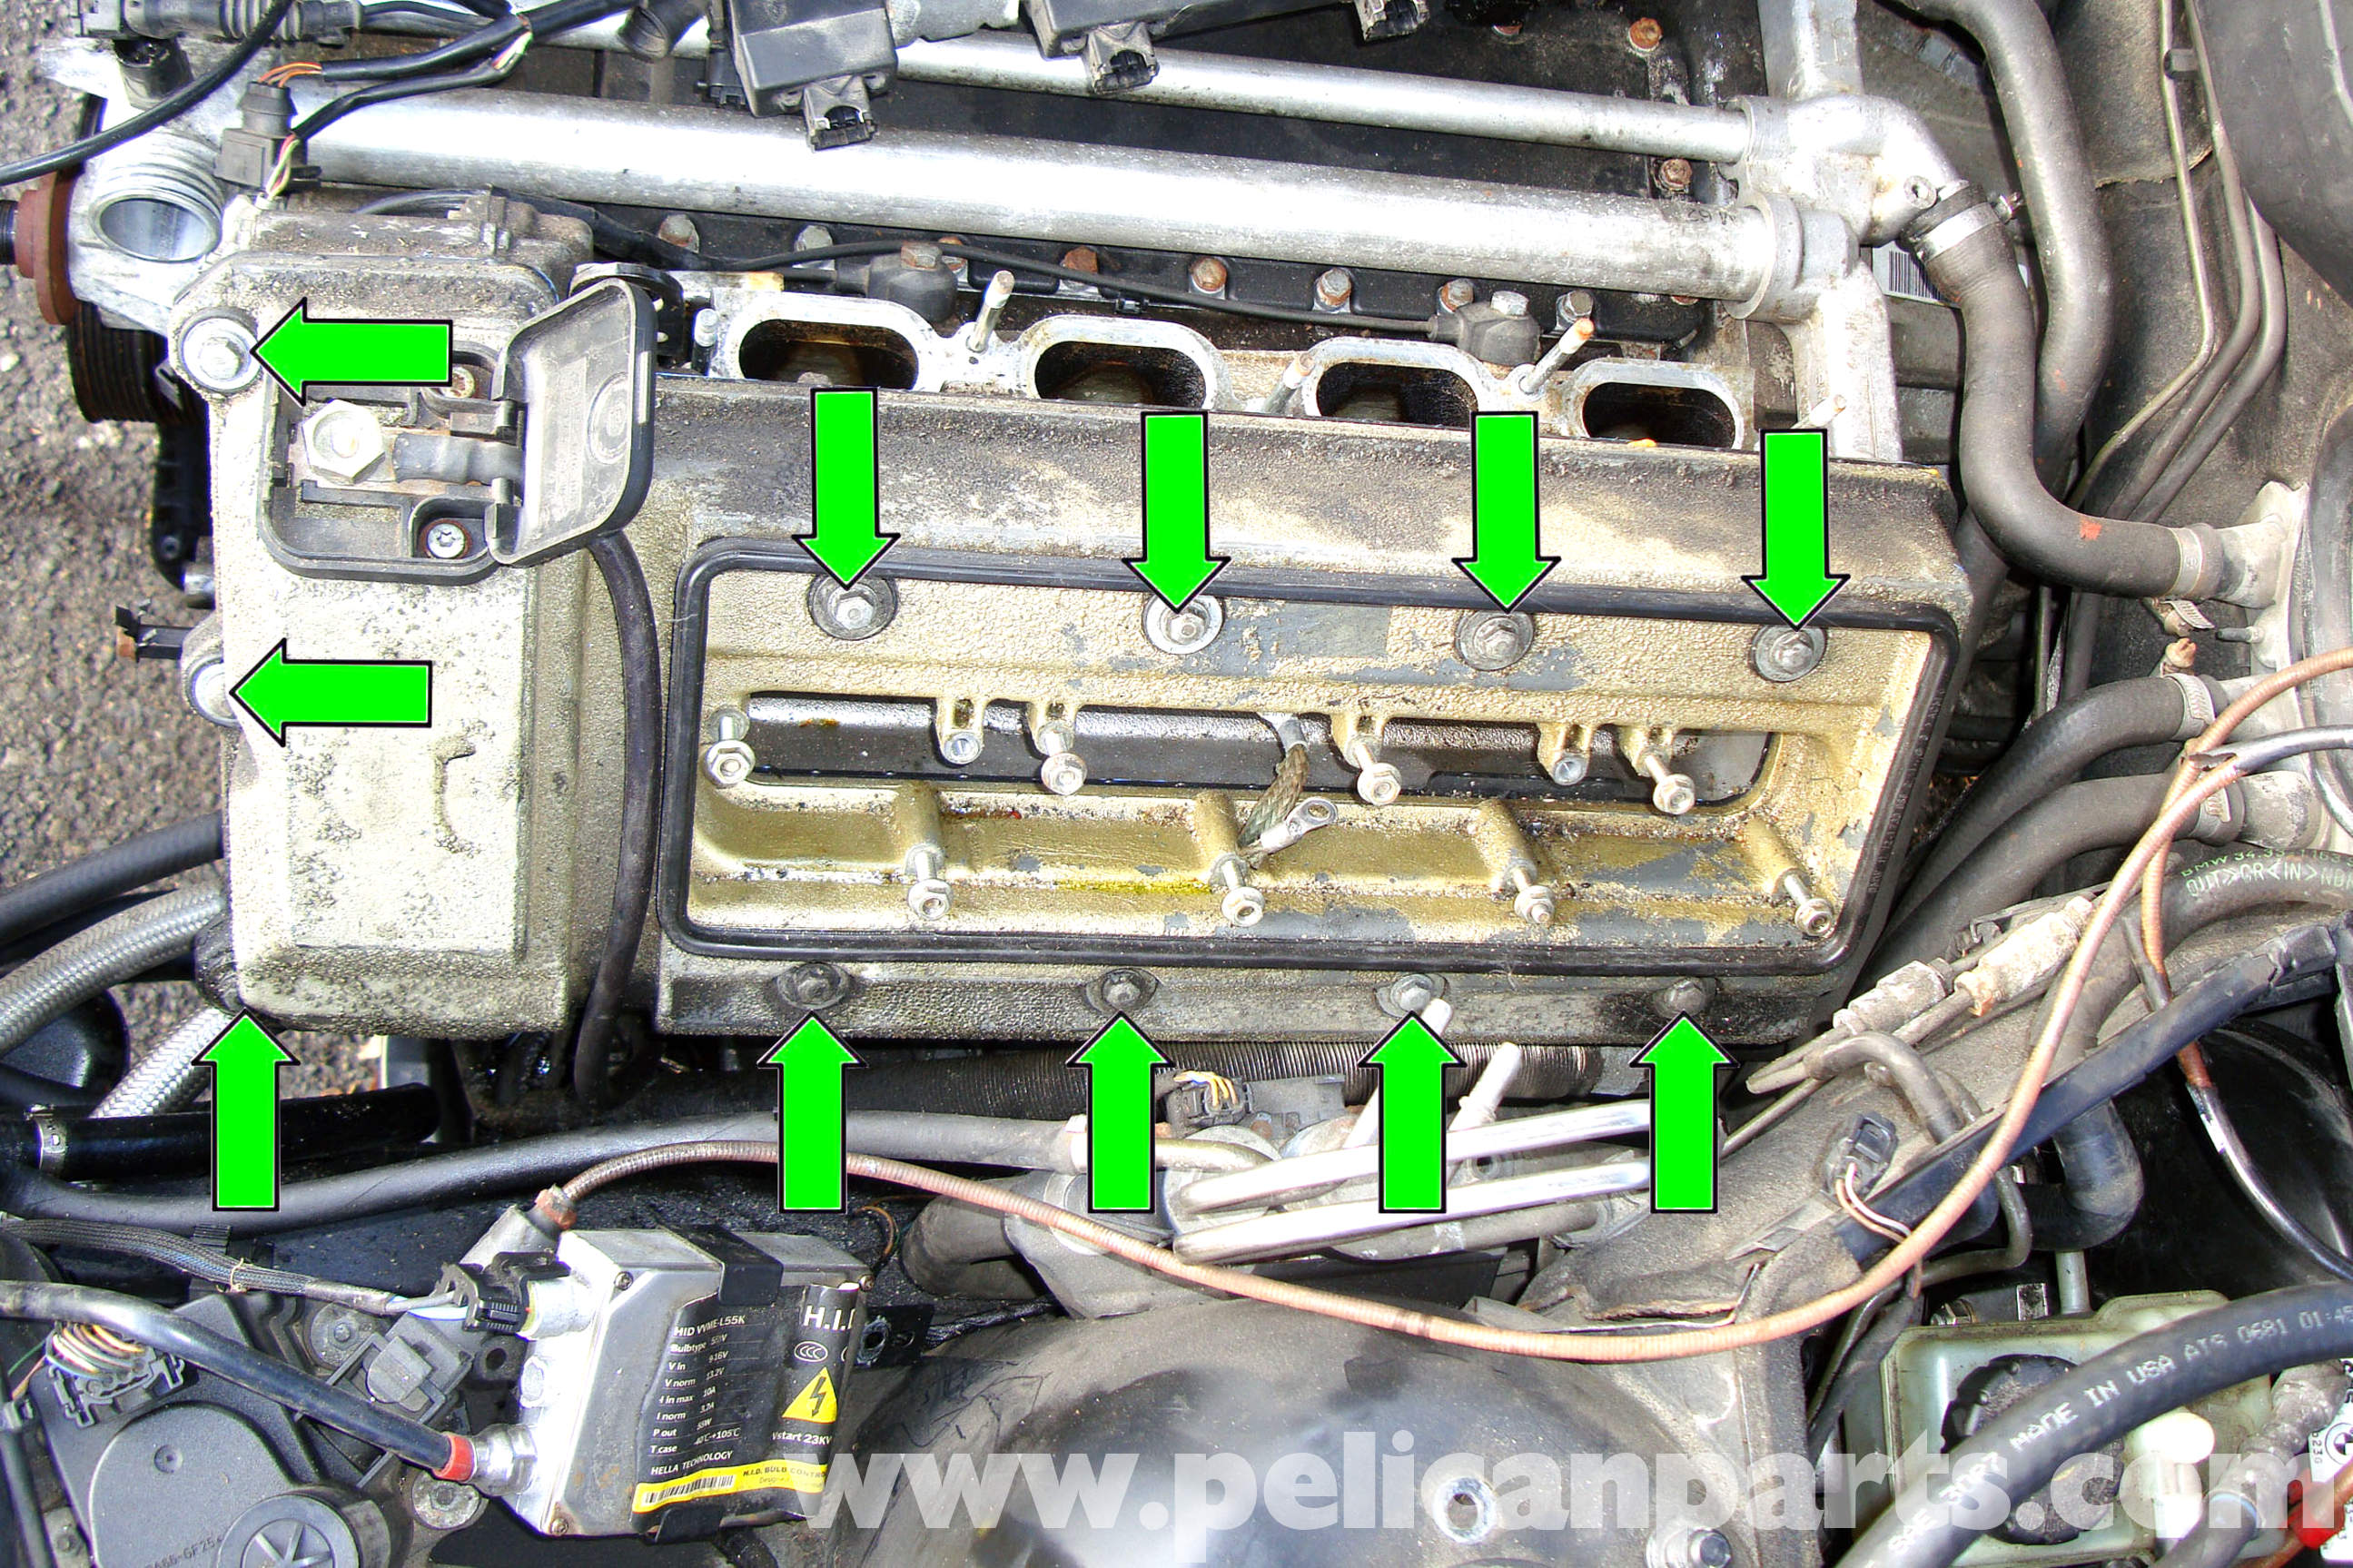 1994 Bmw 525i Spark Plugs From The To Motherboard Wiring Diagram E39 5 Series Cylinder Header Gasket Removal 1997 2003 Rh Pelicanparts Com